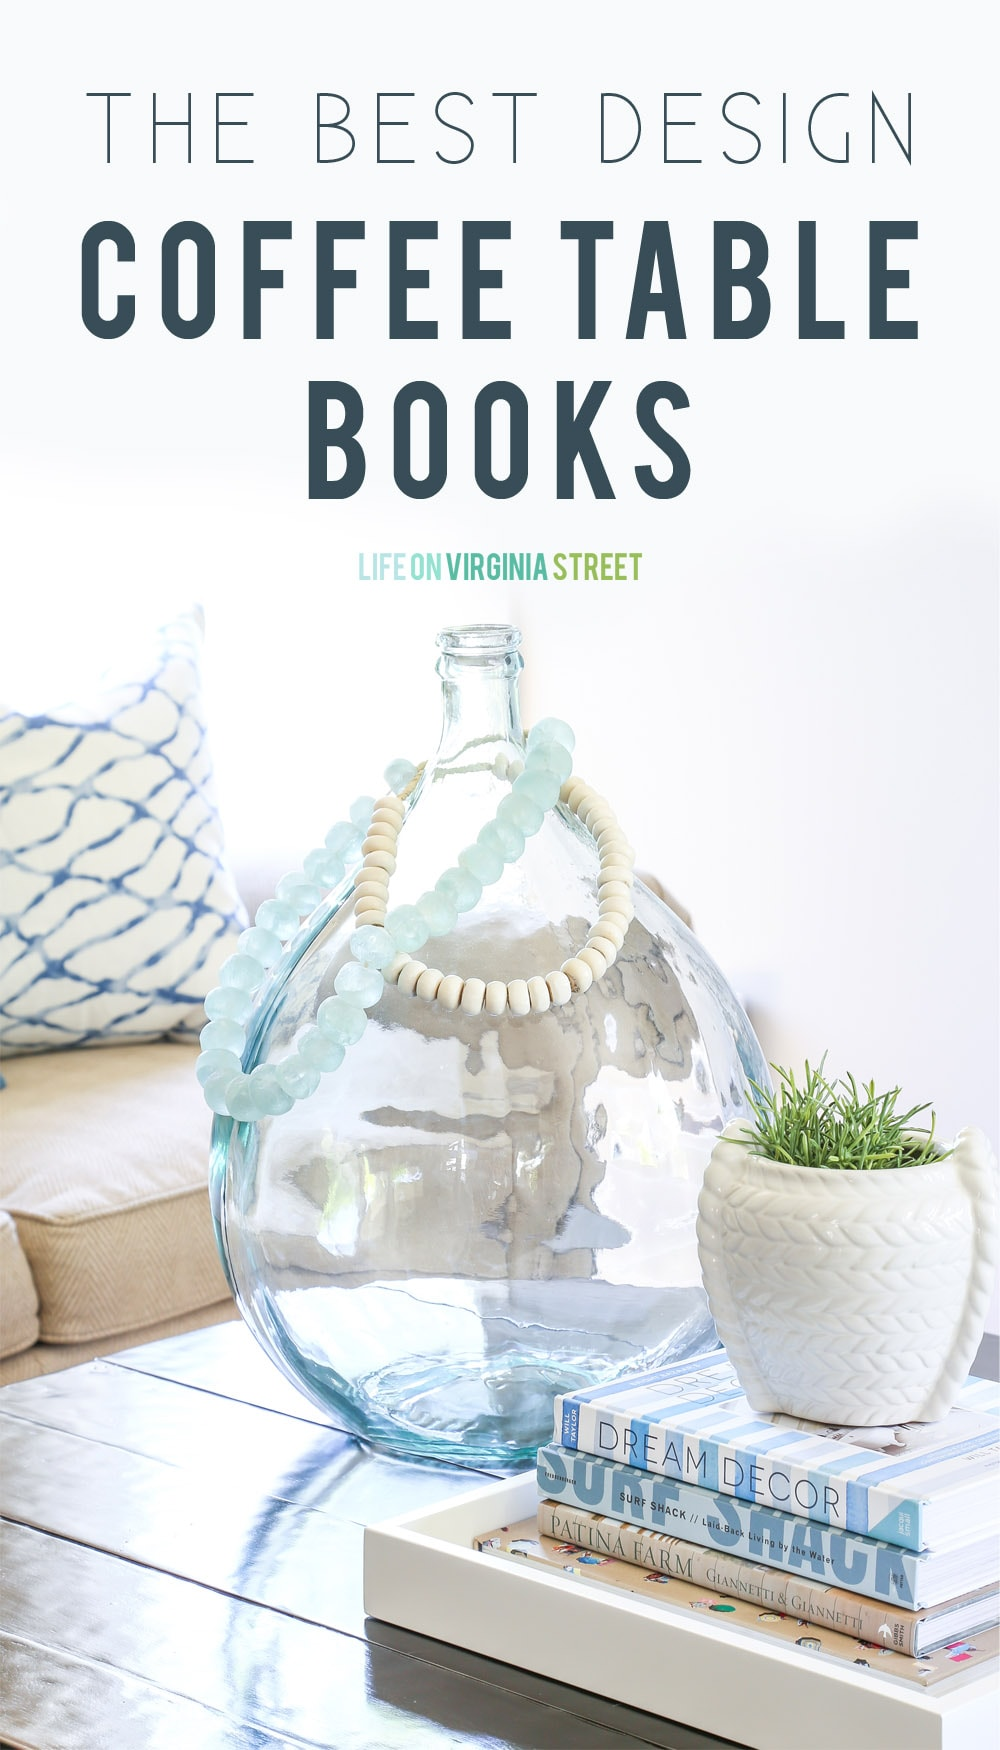 my favorite design coffee table books life on virginia street. Black Bedroom Furniture Sets. Home Design Ideas